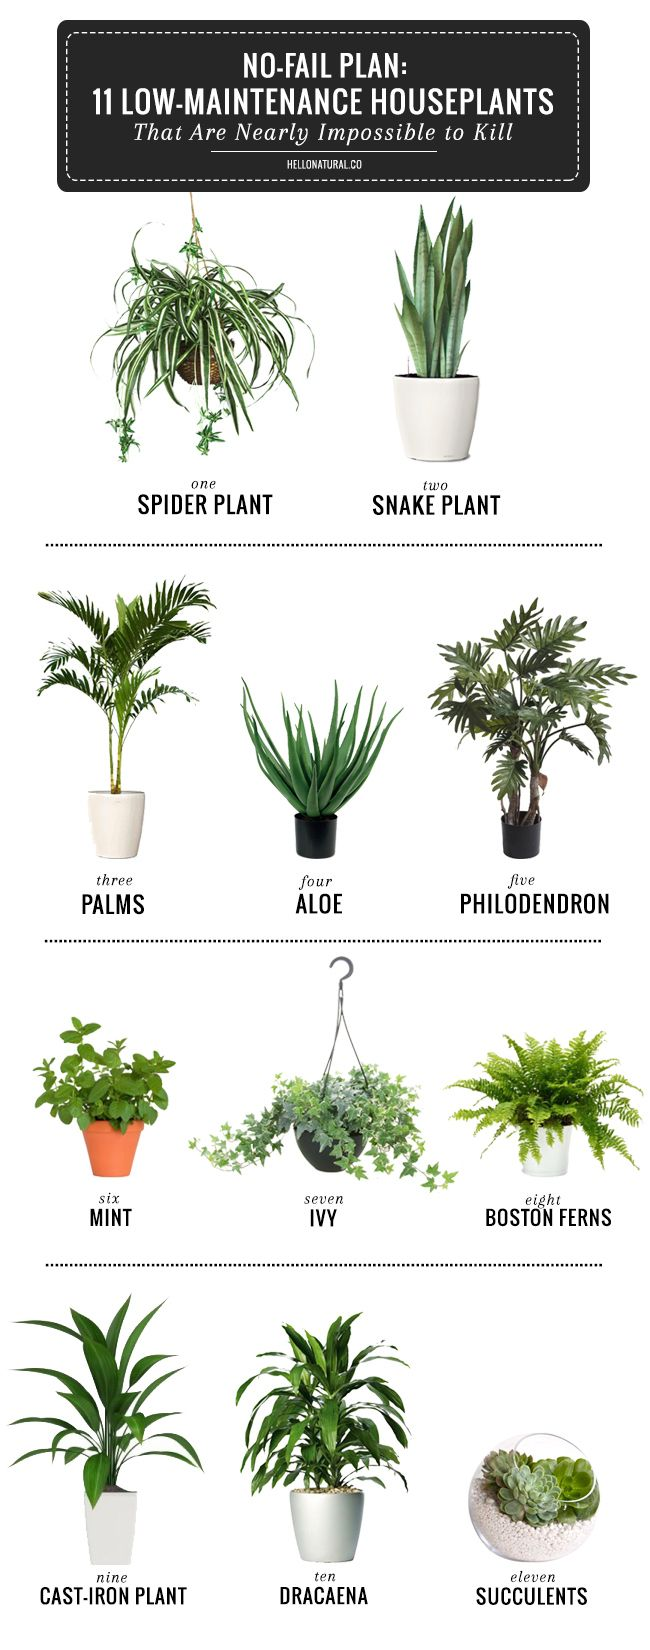 Best 25 plants ideas on pinterest house plants indoor house plants and plant care - Indoor water plants list ...